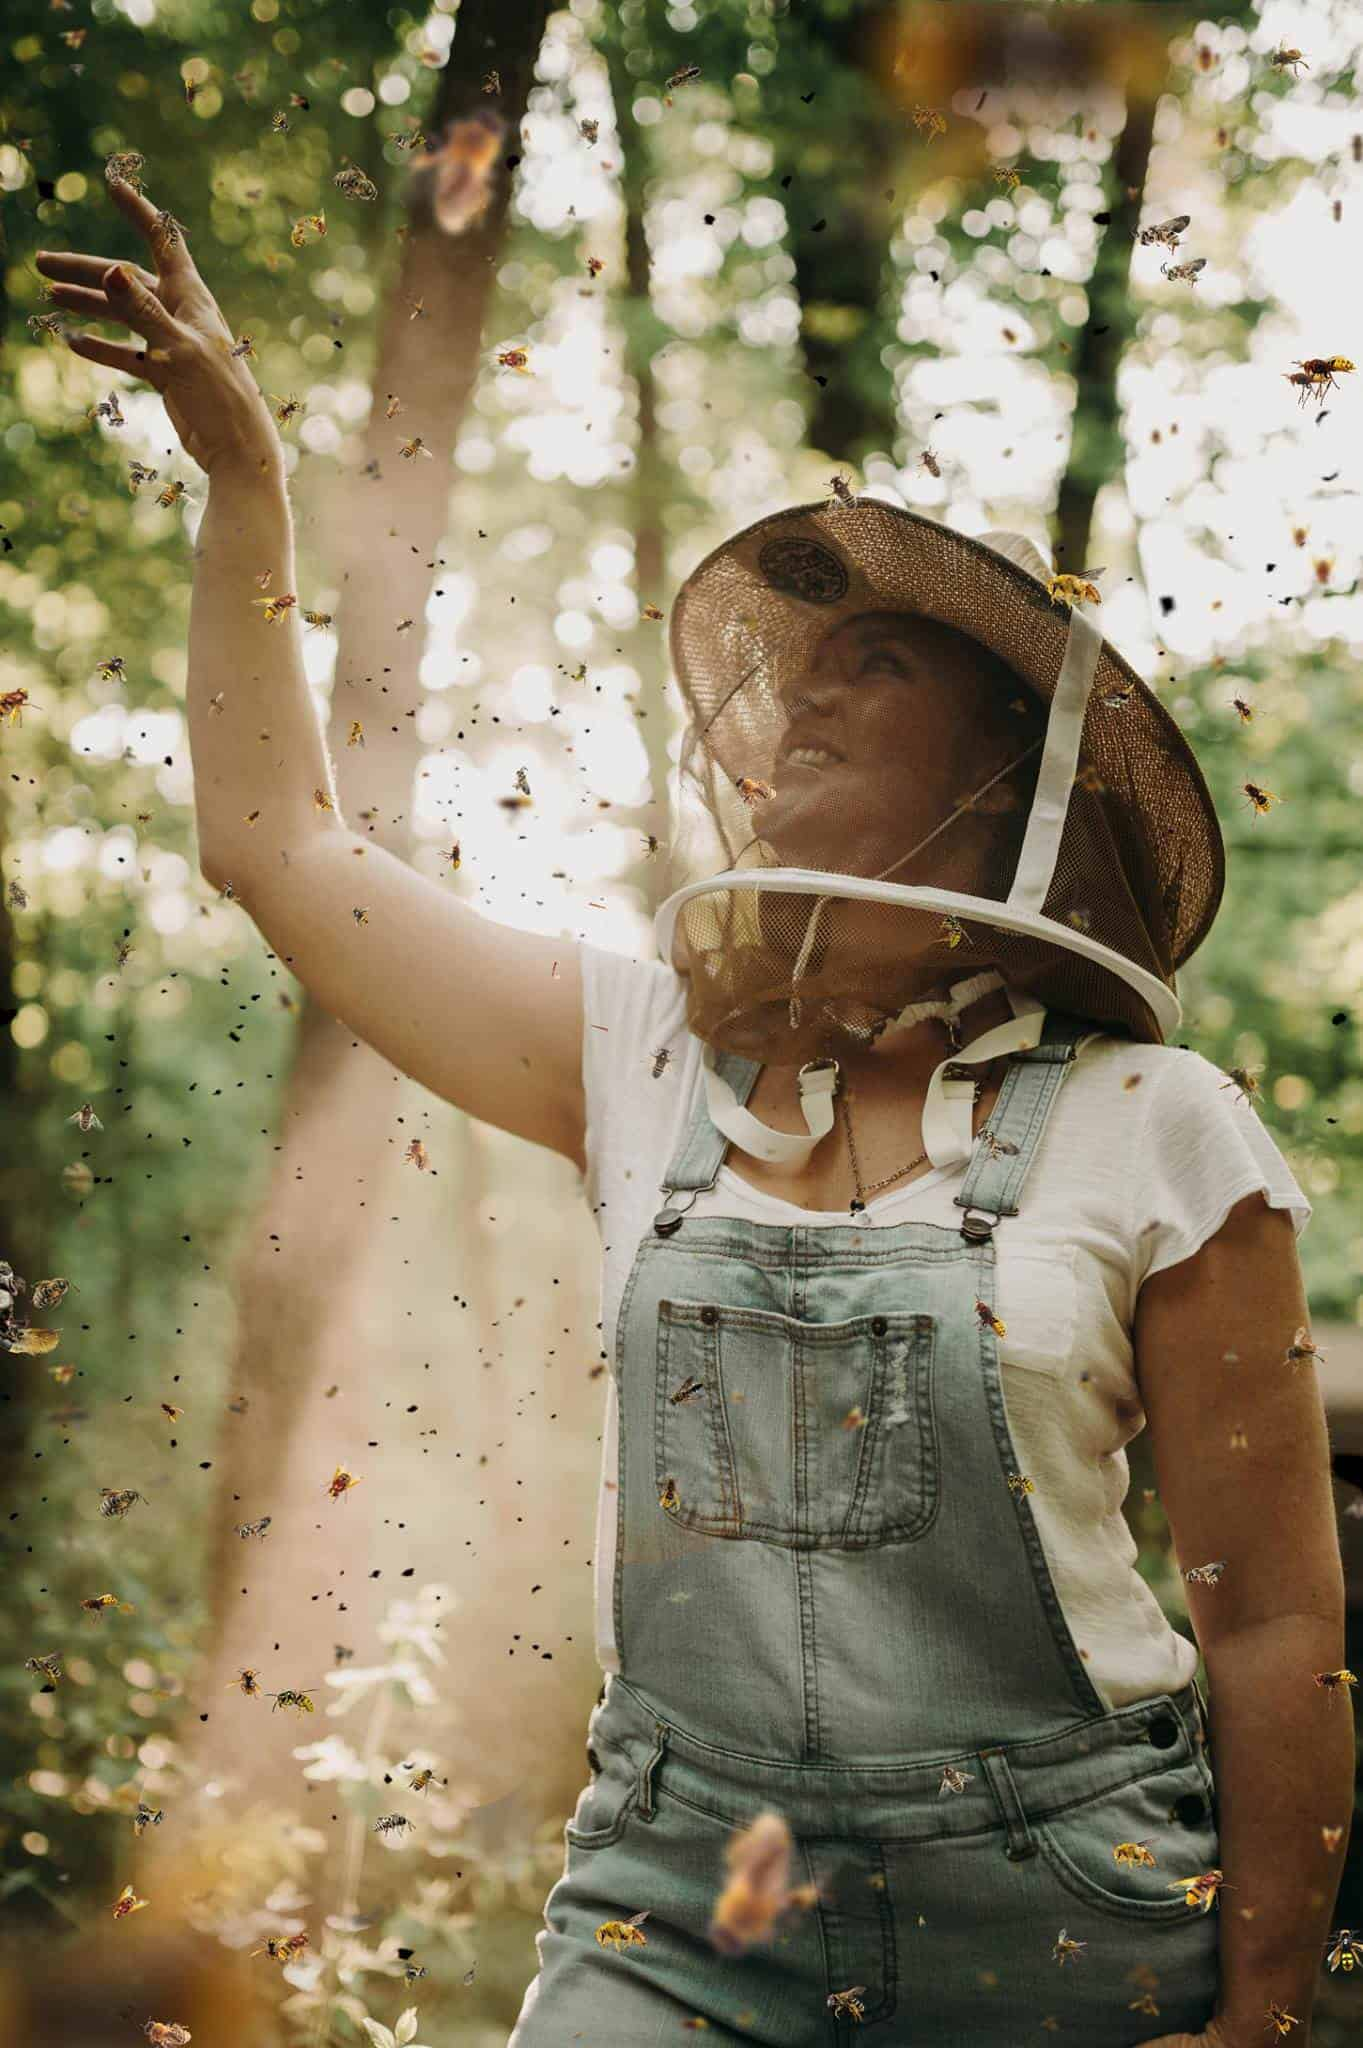 A woman wears a special hat to be protected and tries to touch a bee